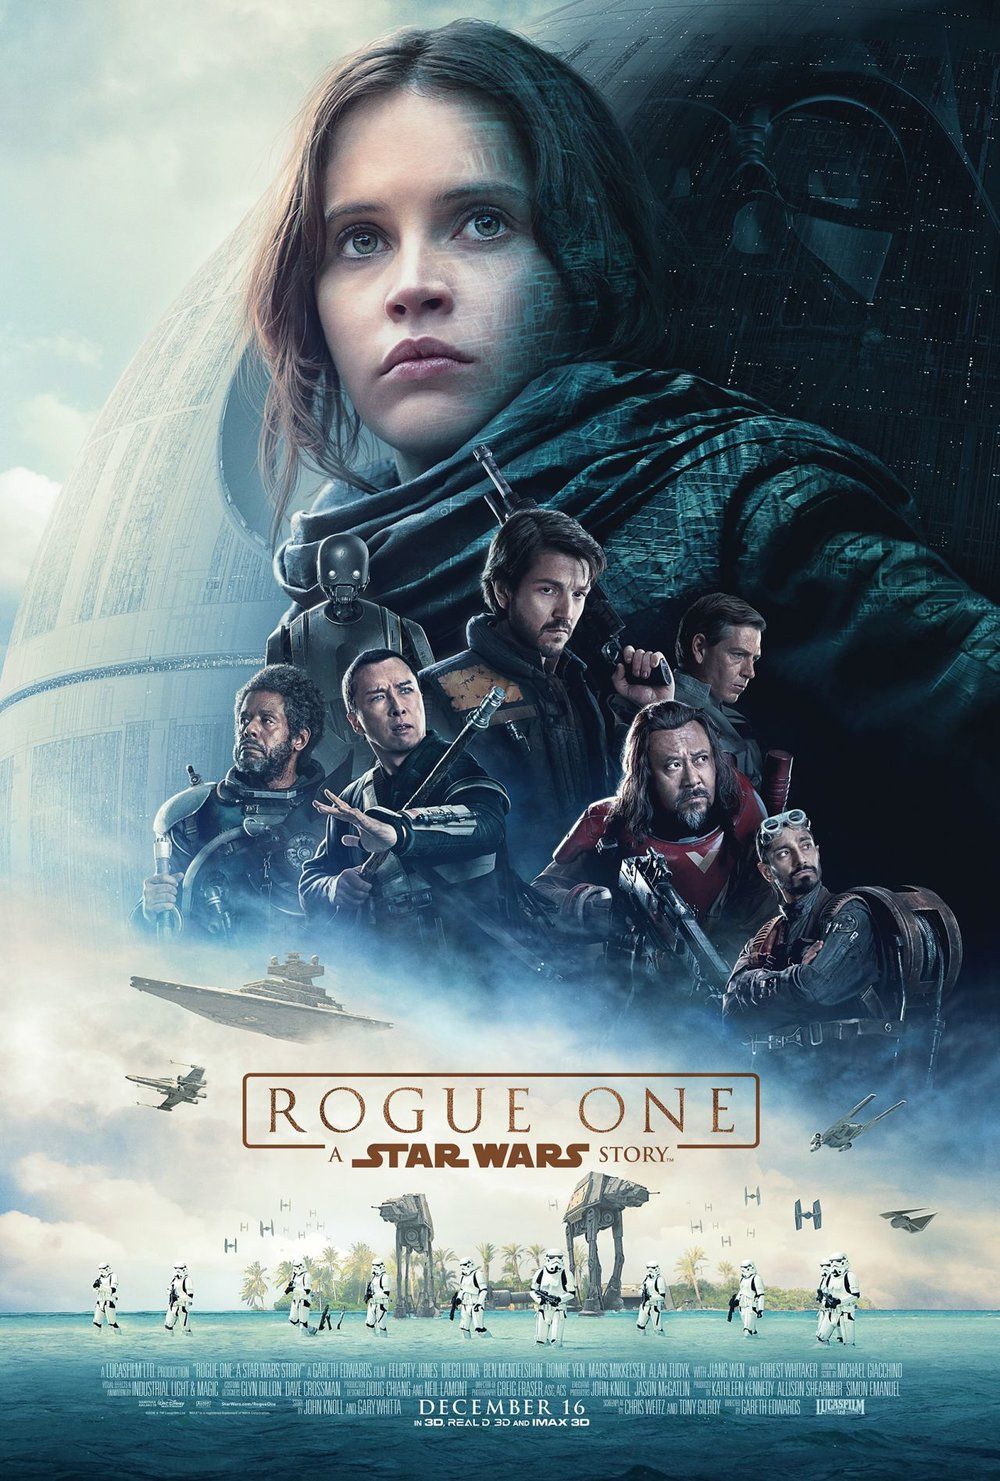 Death Star? Check. Vader helmet? Check. Floating heads? Check. Must be a  Star Wars poster.